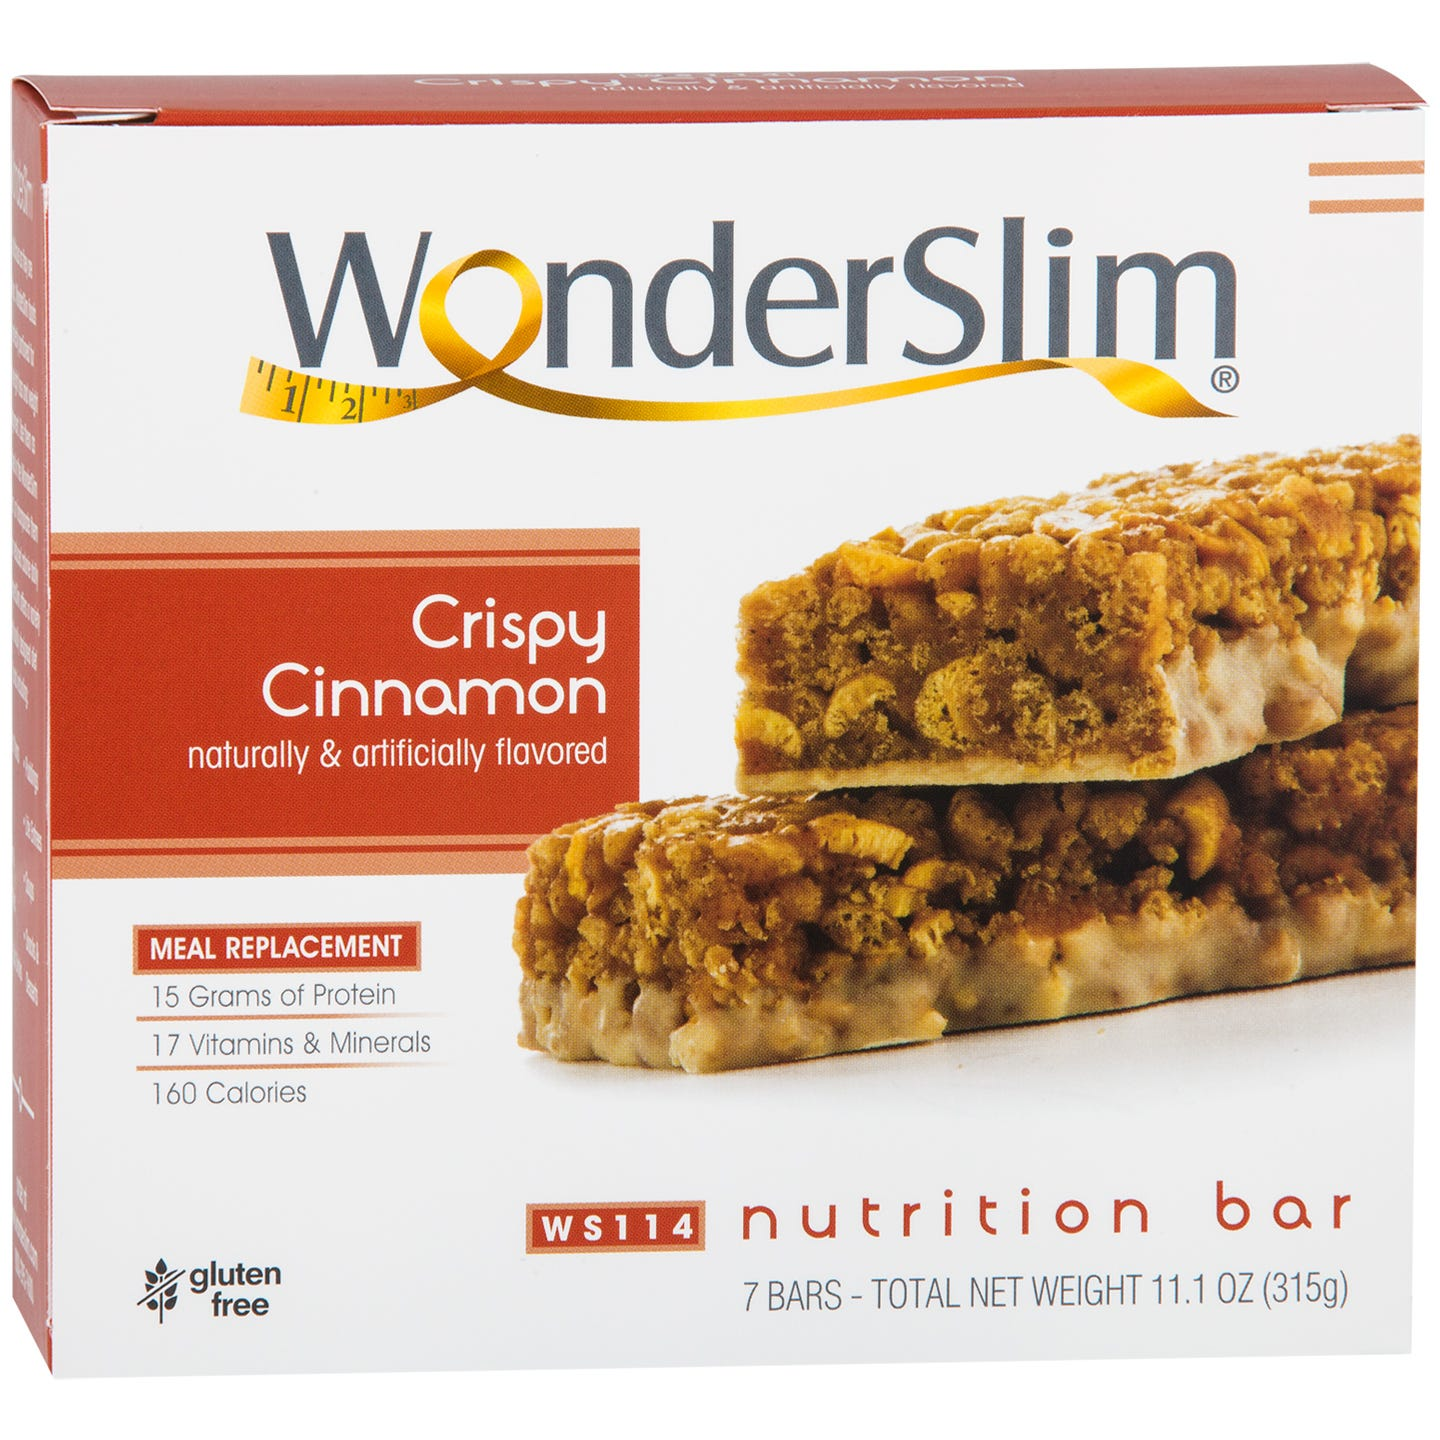 WonderSlim Meal Replacement Nutrition Bar Crispy Cinnamon (7 ct) - Rapid Diet Weight Loss Products Shop